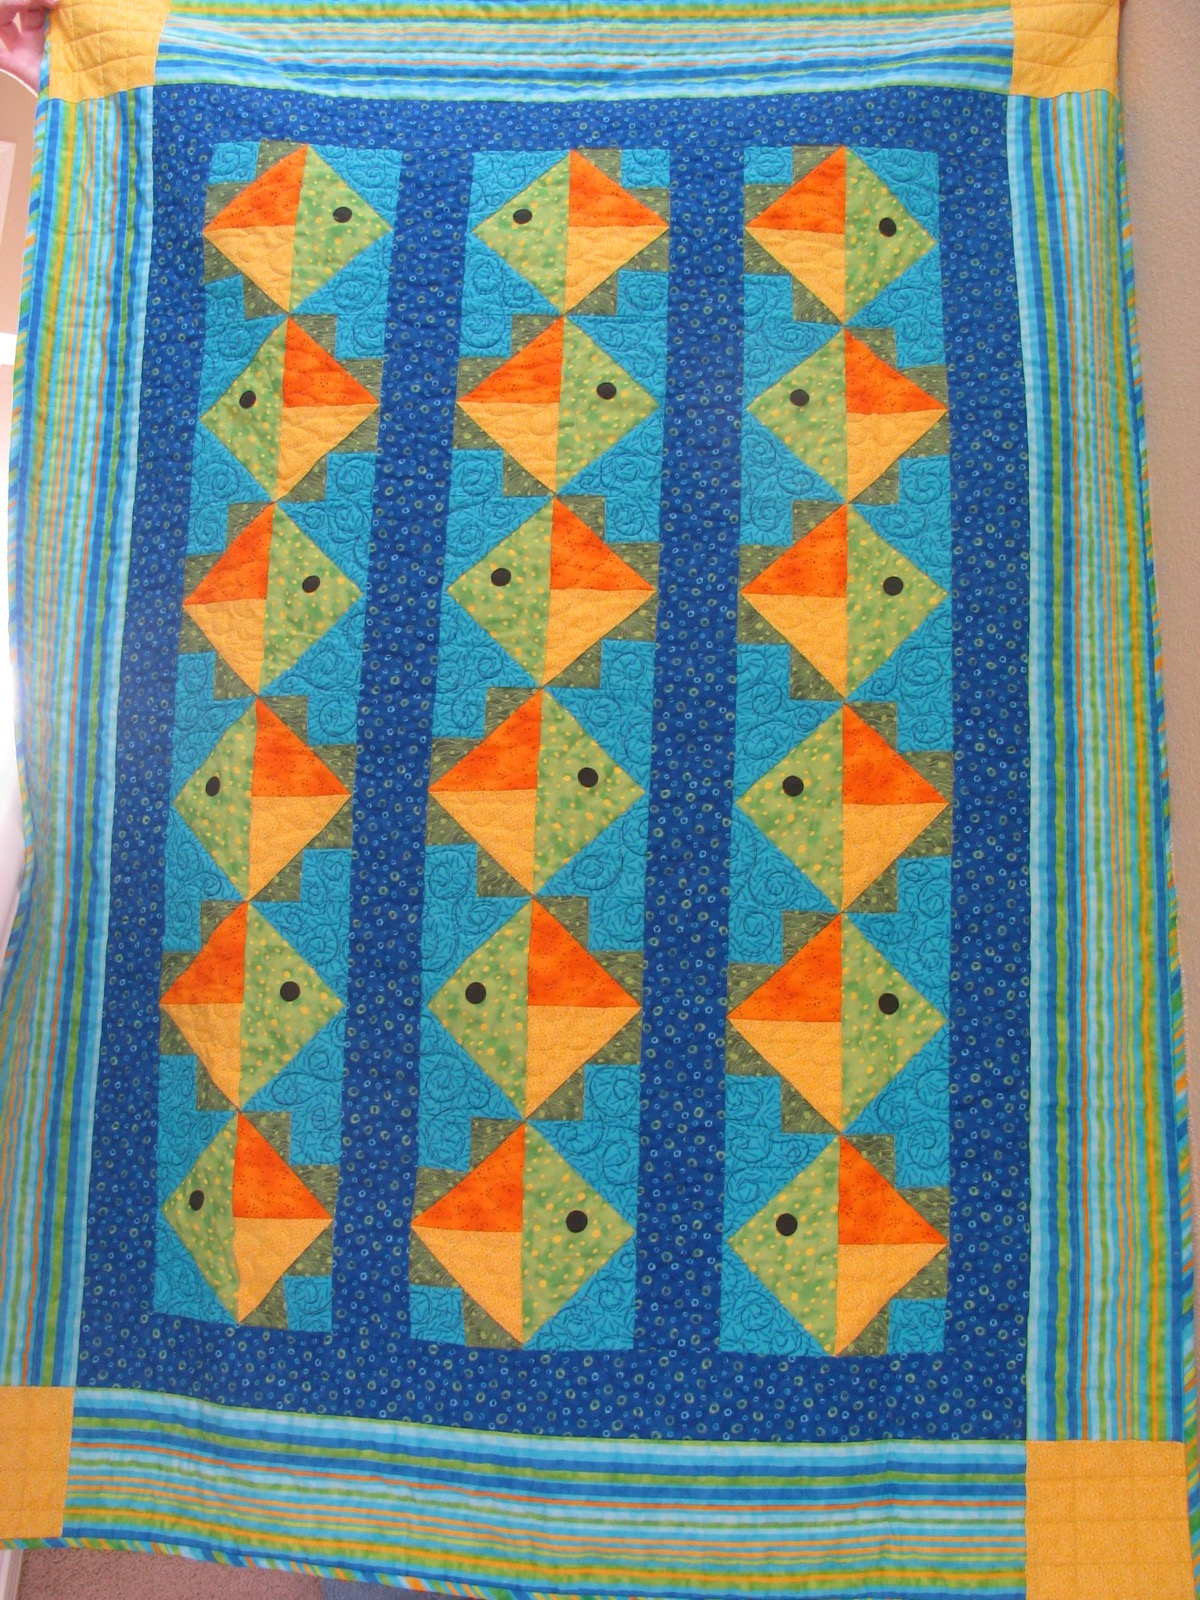 img sunnydayquiltingandembroidery category fish quilt com shows